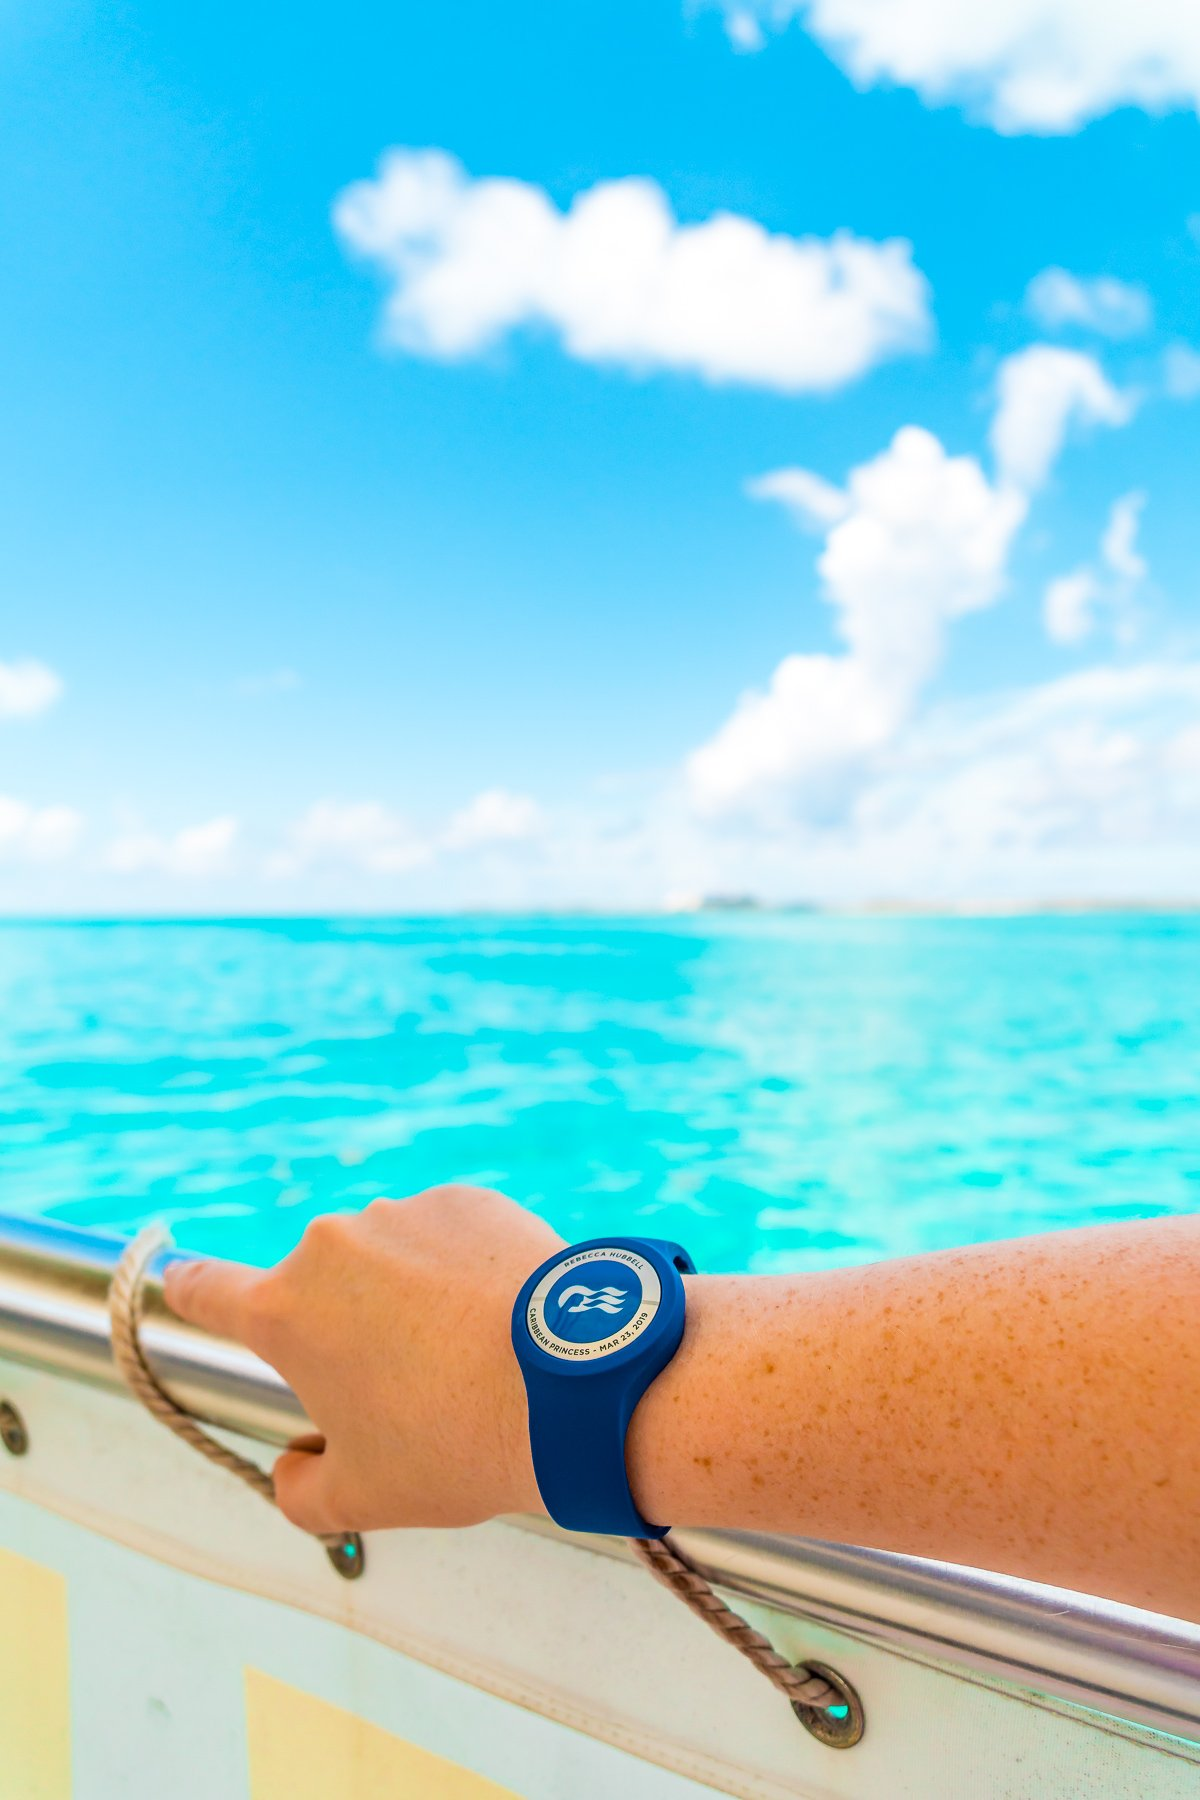 Princess Cruises Ocean Medallion watch on a woman's arm on a boat overlooking the Caribbean.